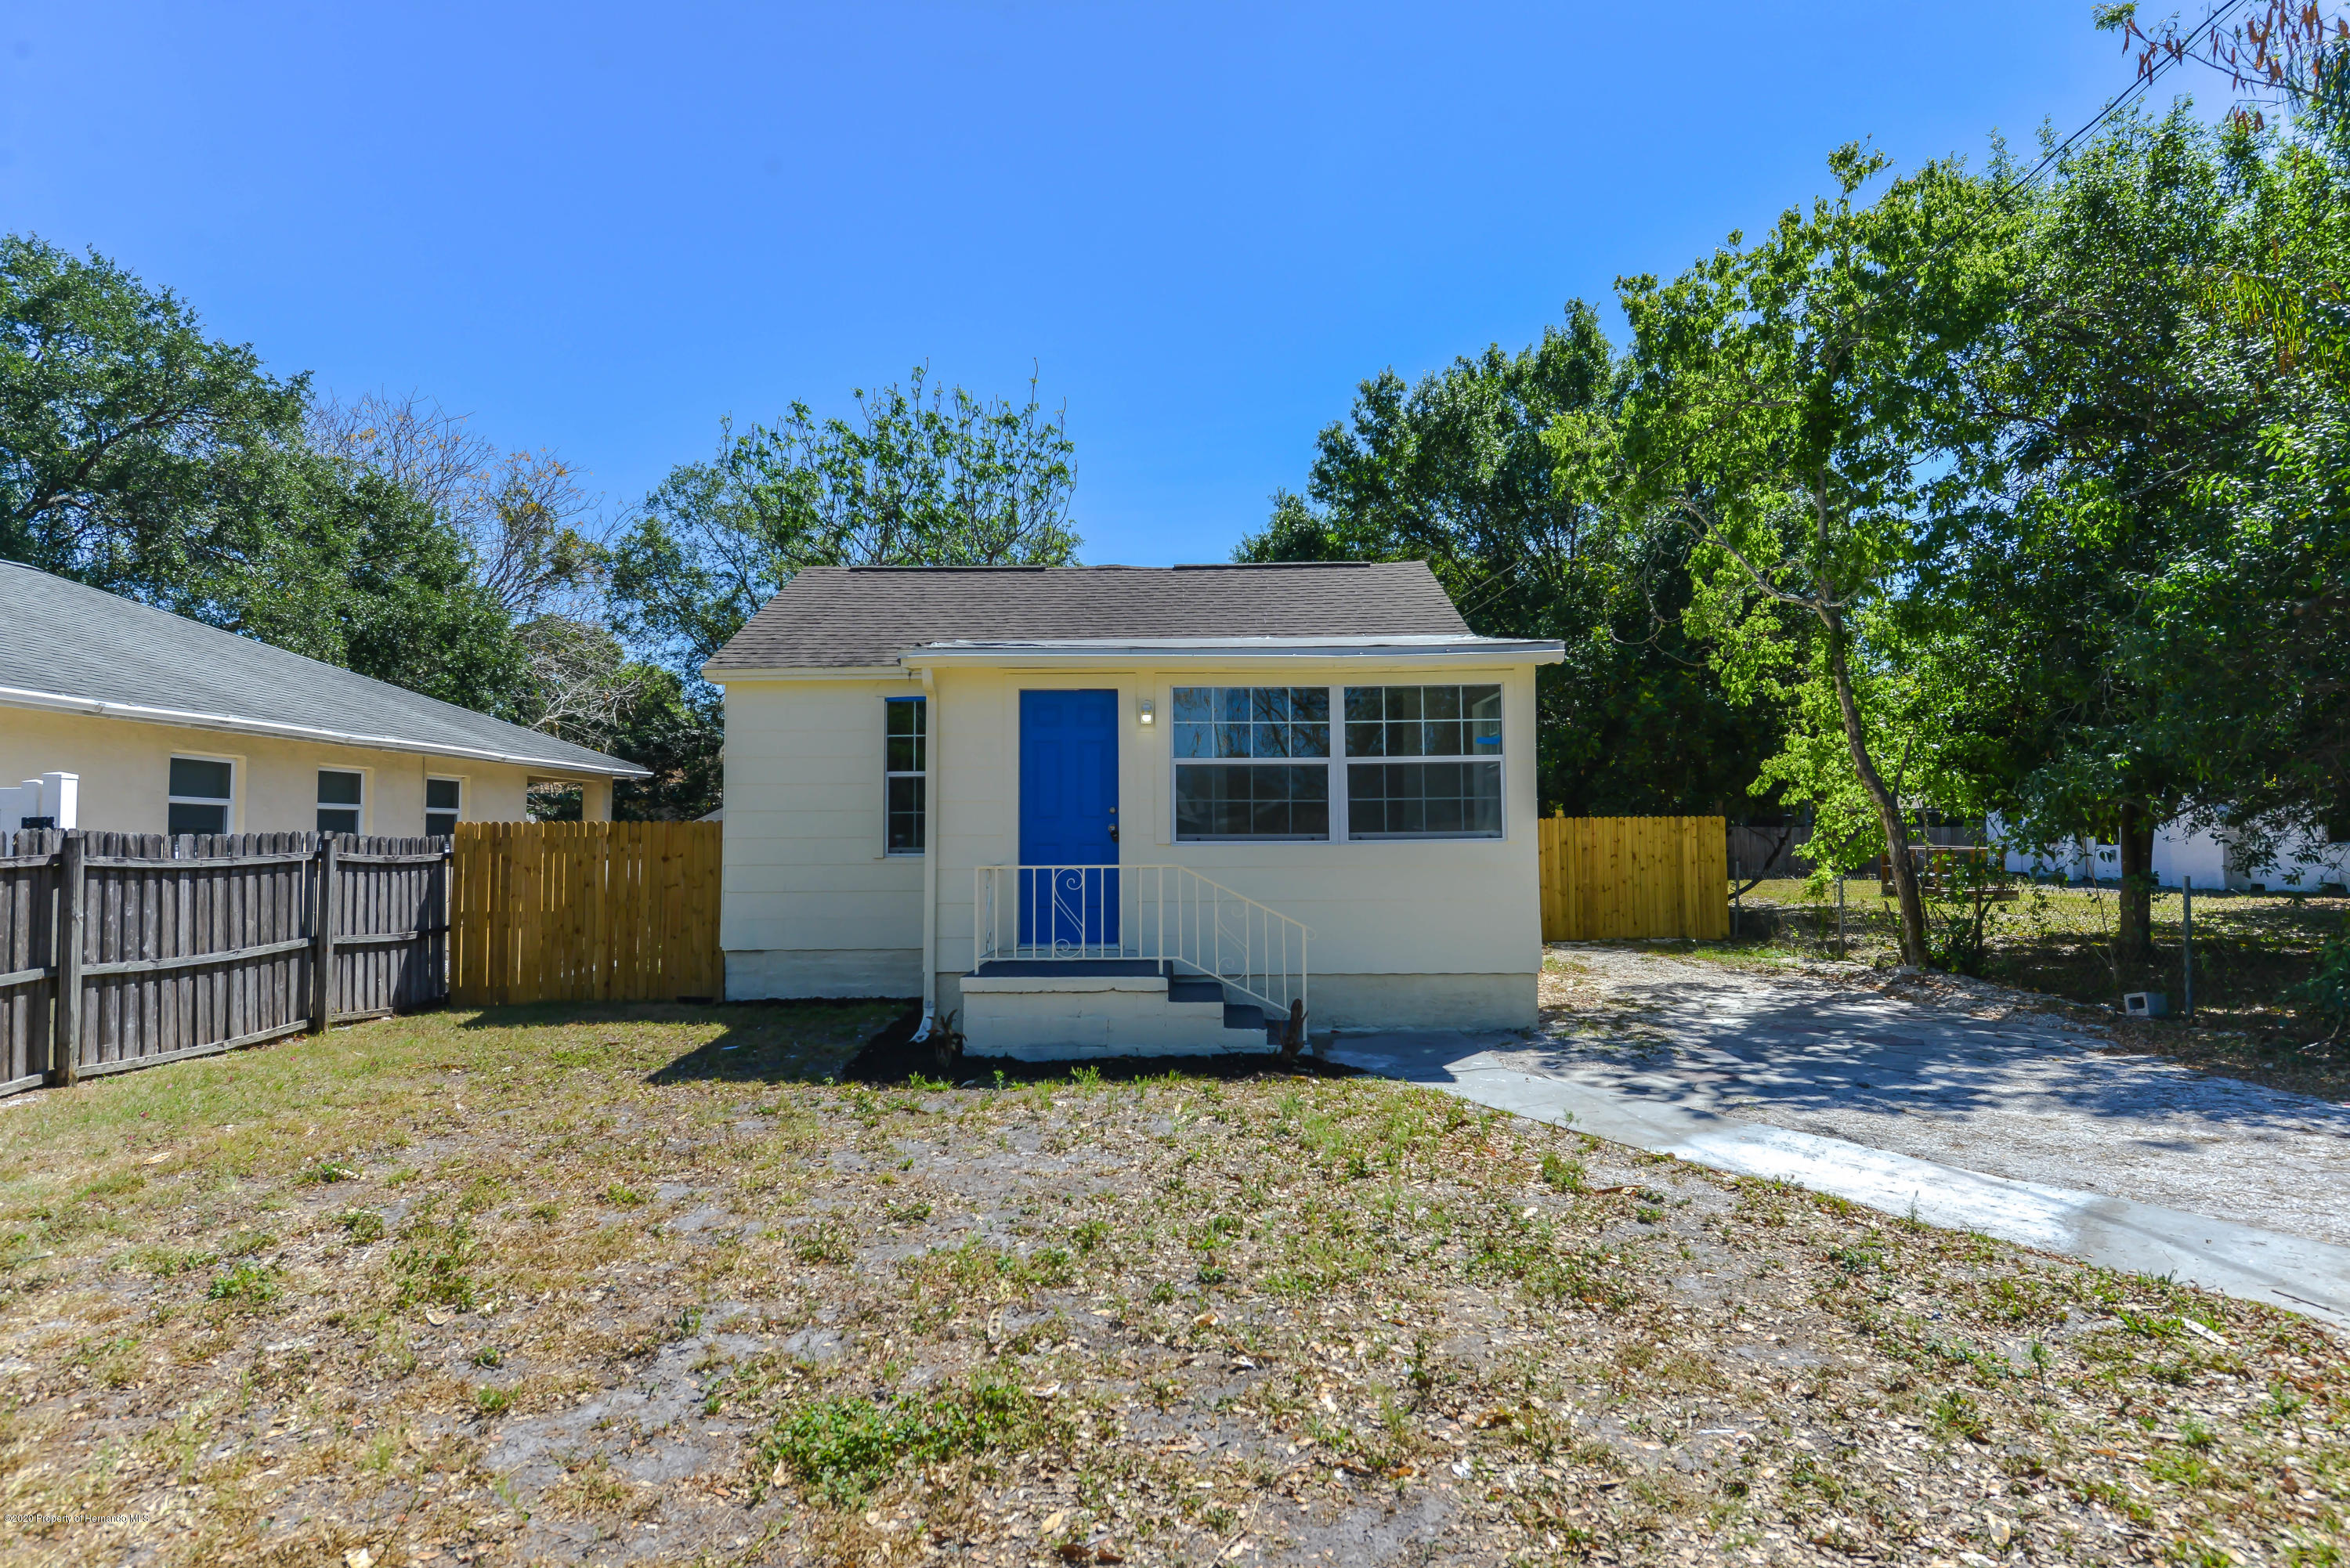 Details for 6453 Wayne Street, St. Petersburg, FL 33702